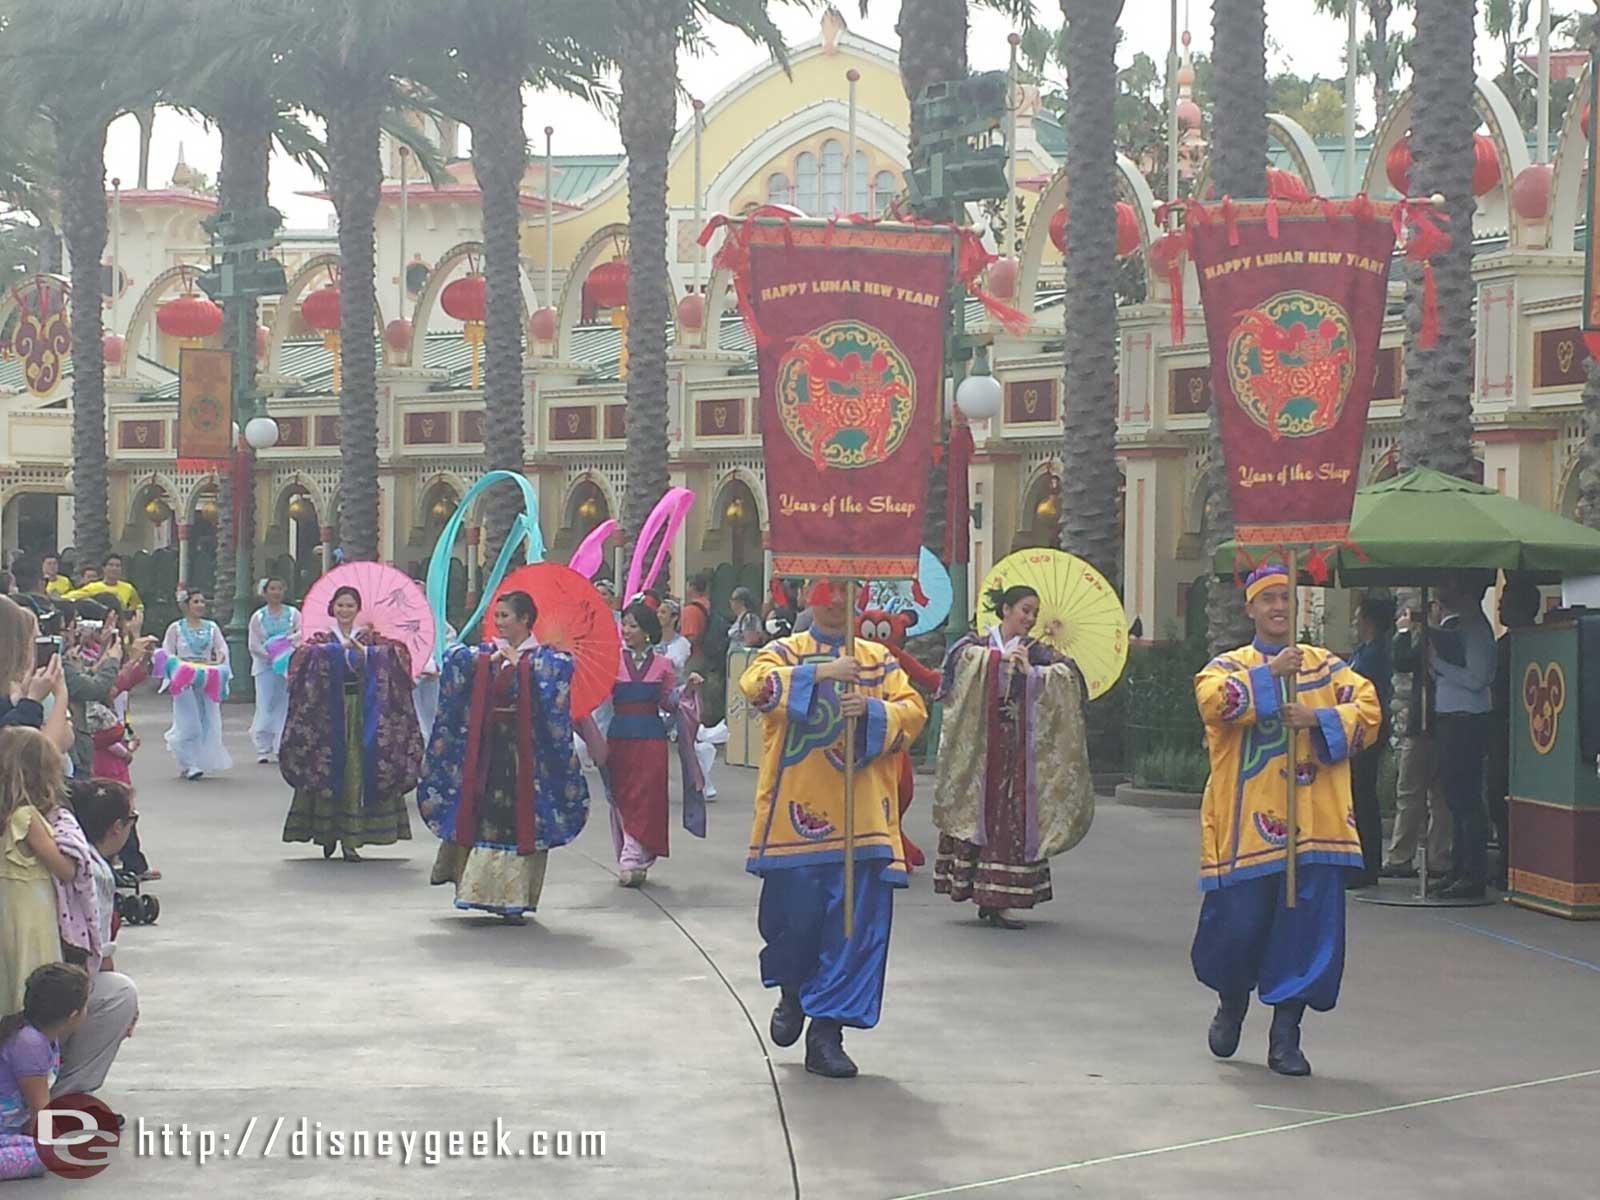 Mulan Procession arriving at the Lunar New Year celebration